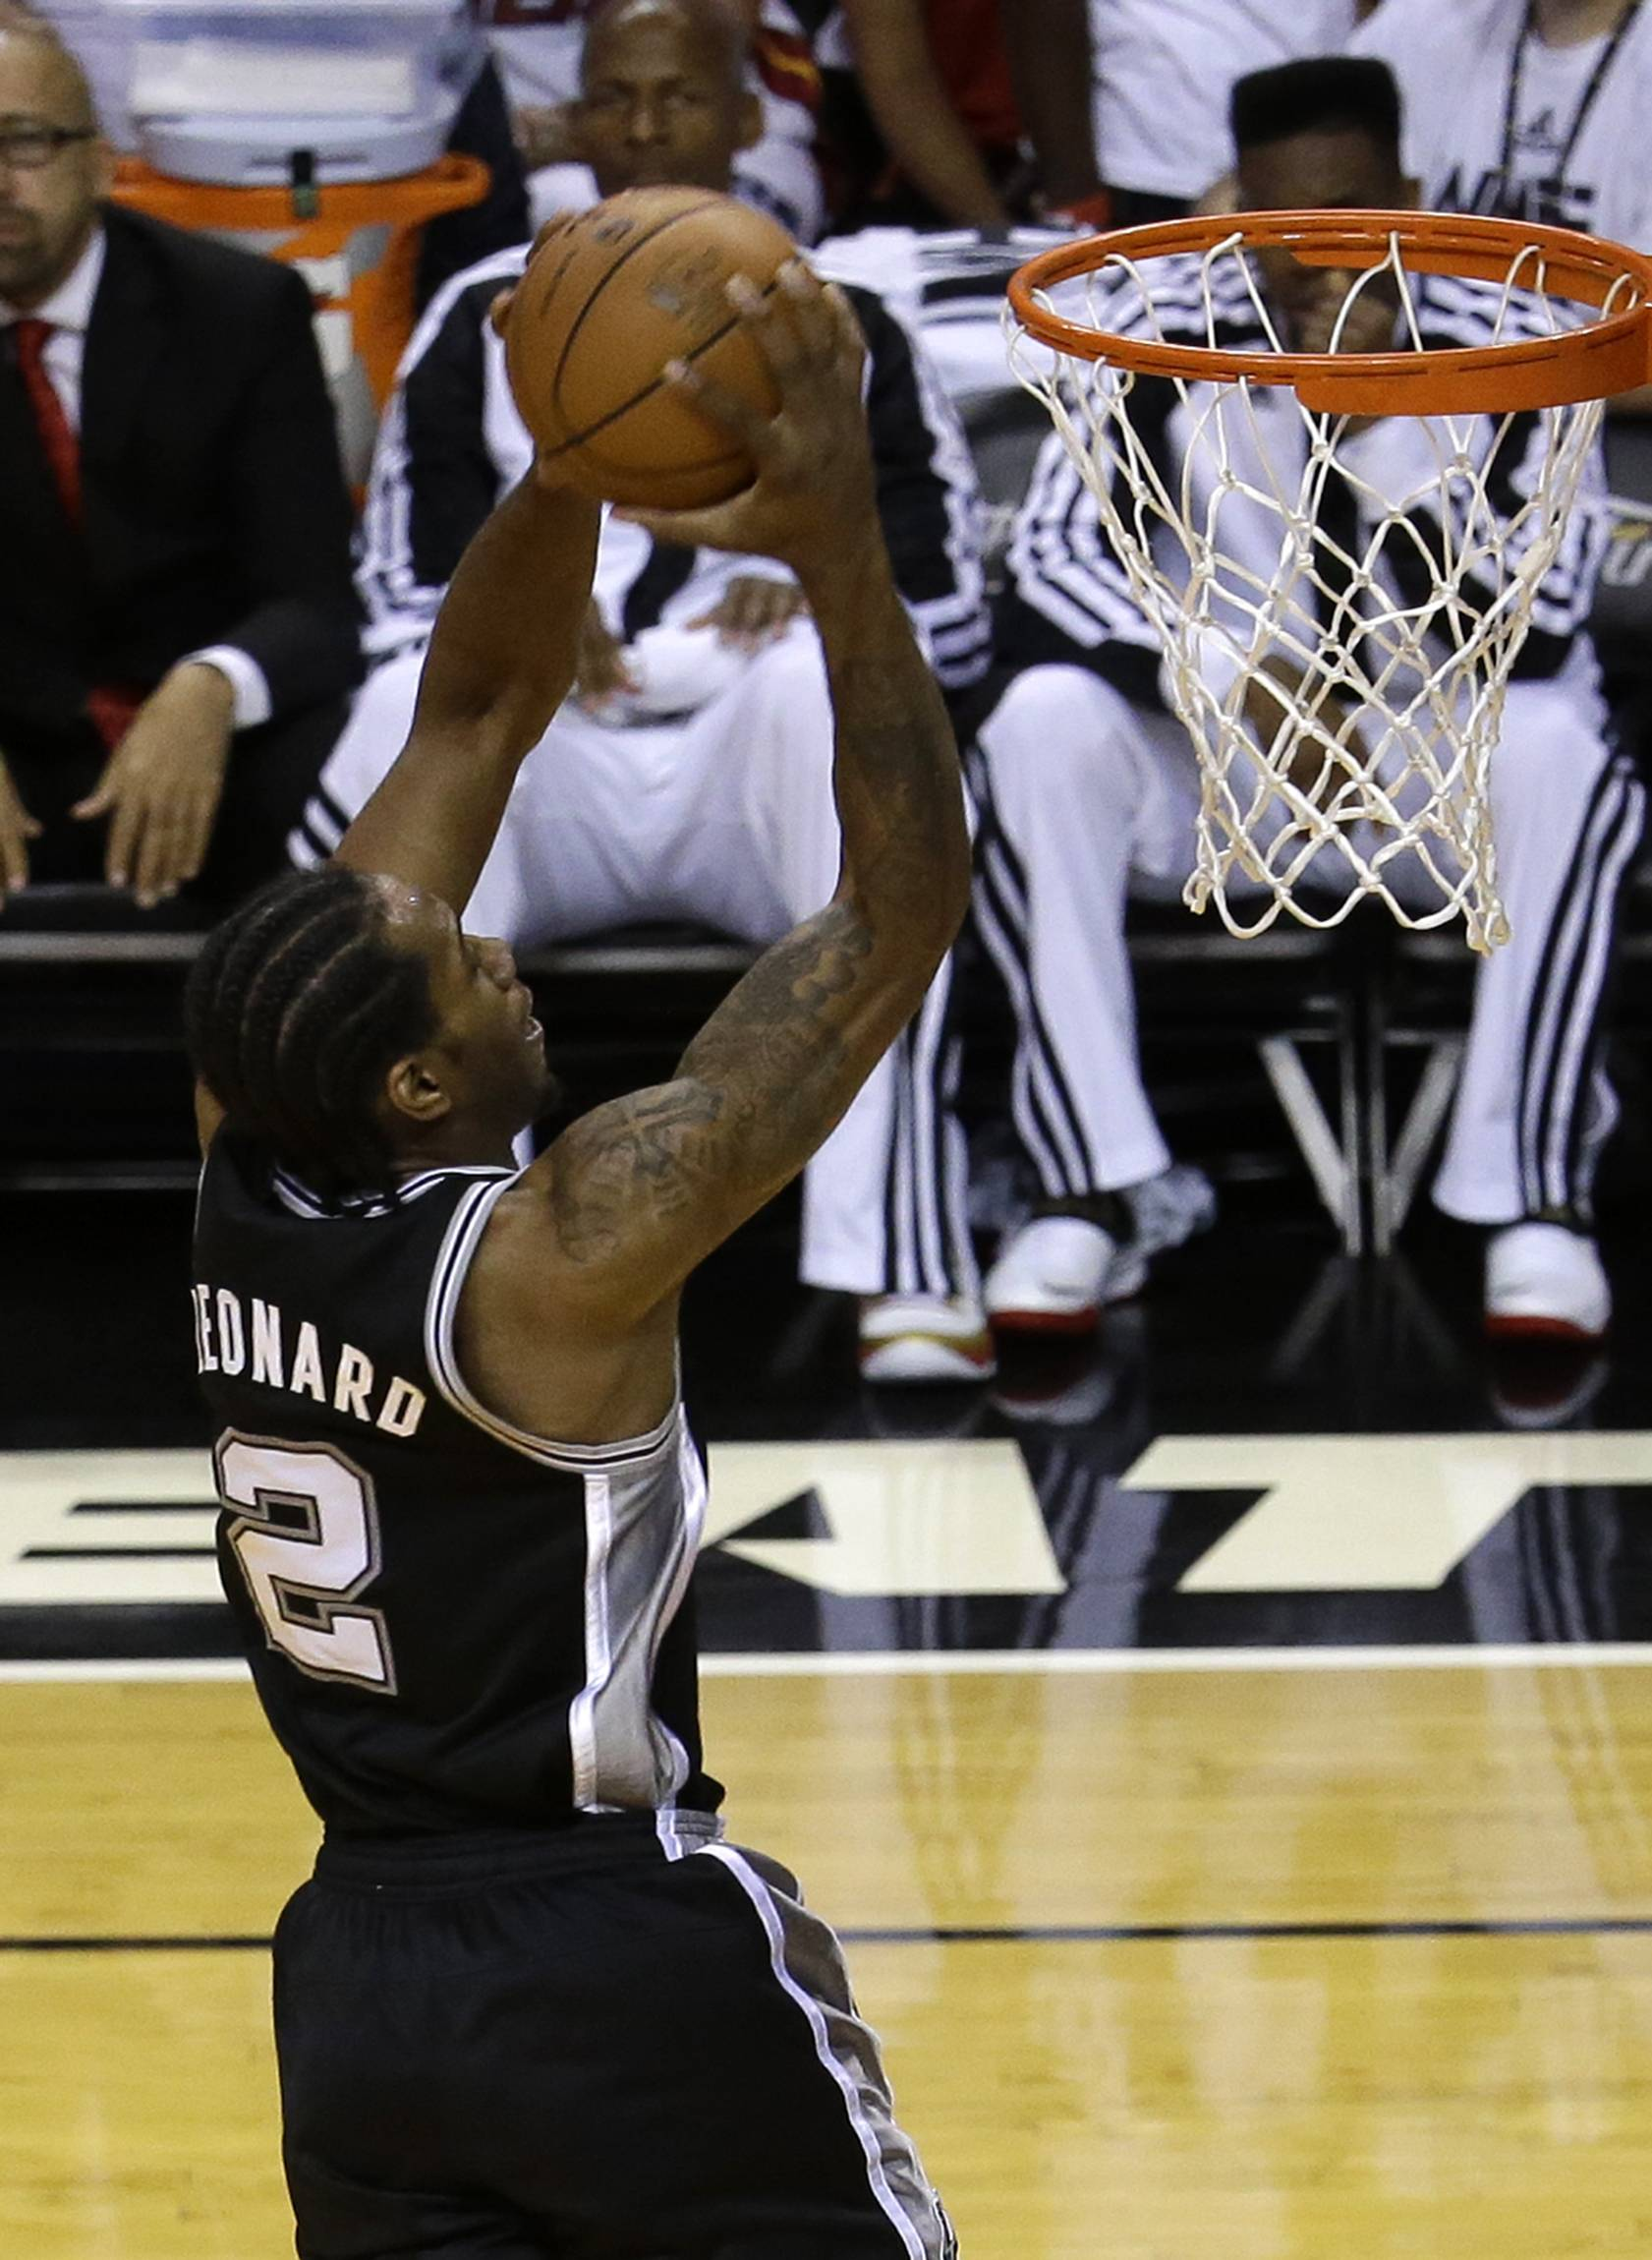 San Antonio Spurs forward Kawhi Leonard (2) goes to the basket against the Miami Heat in Game 3 of the NBA basketball finals Tuesday night in Miami. The Spurs won 111-92.